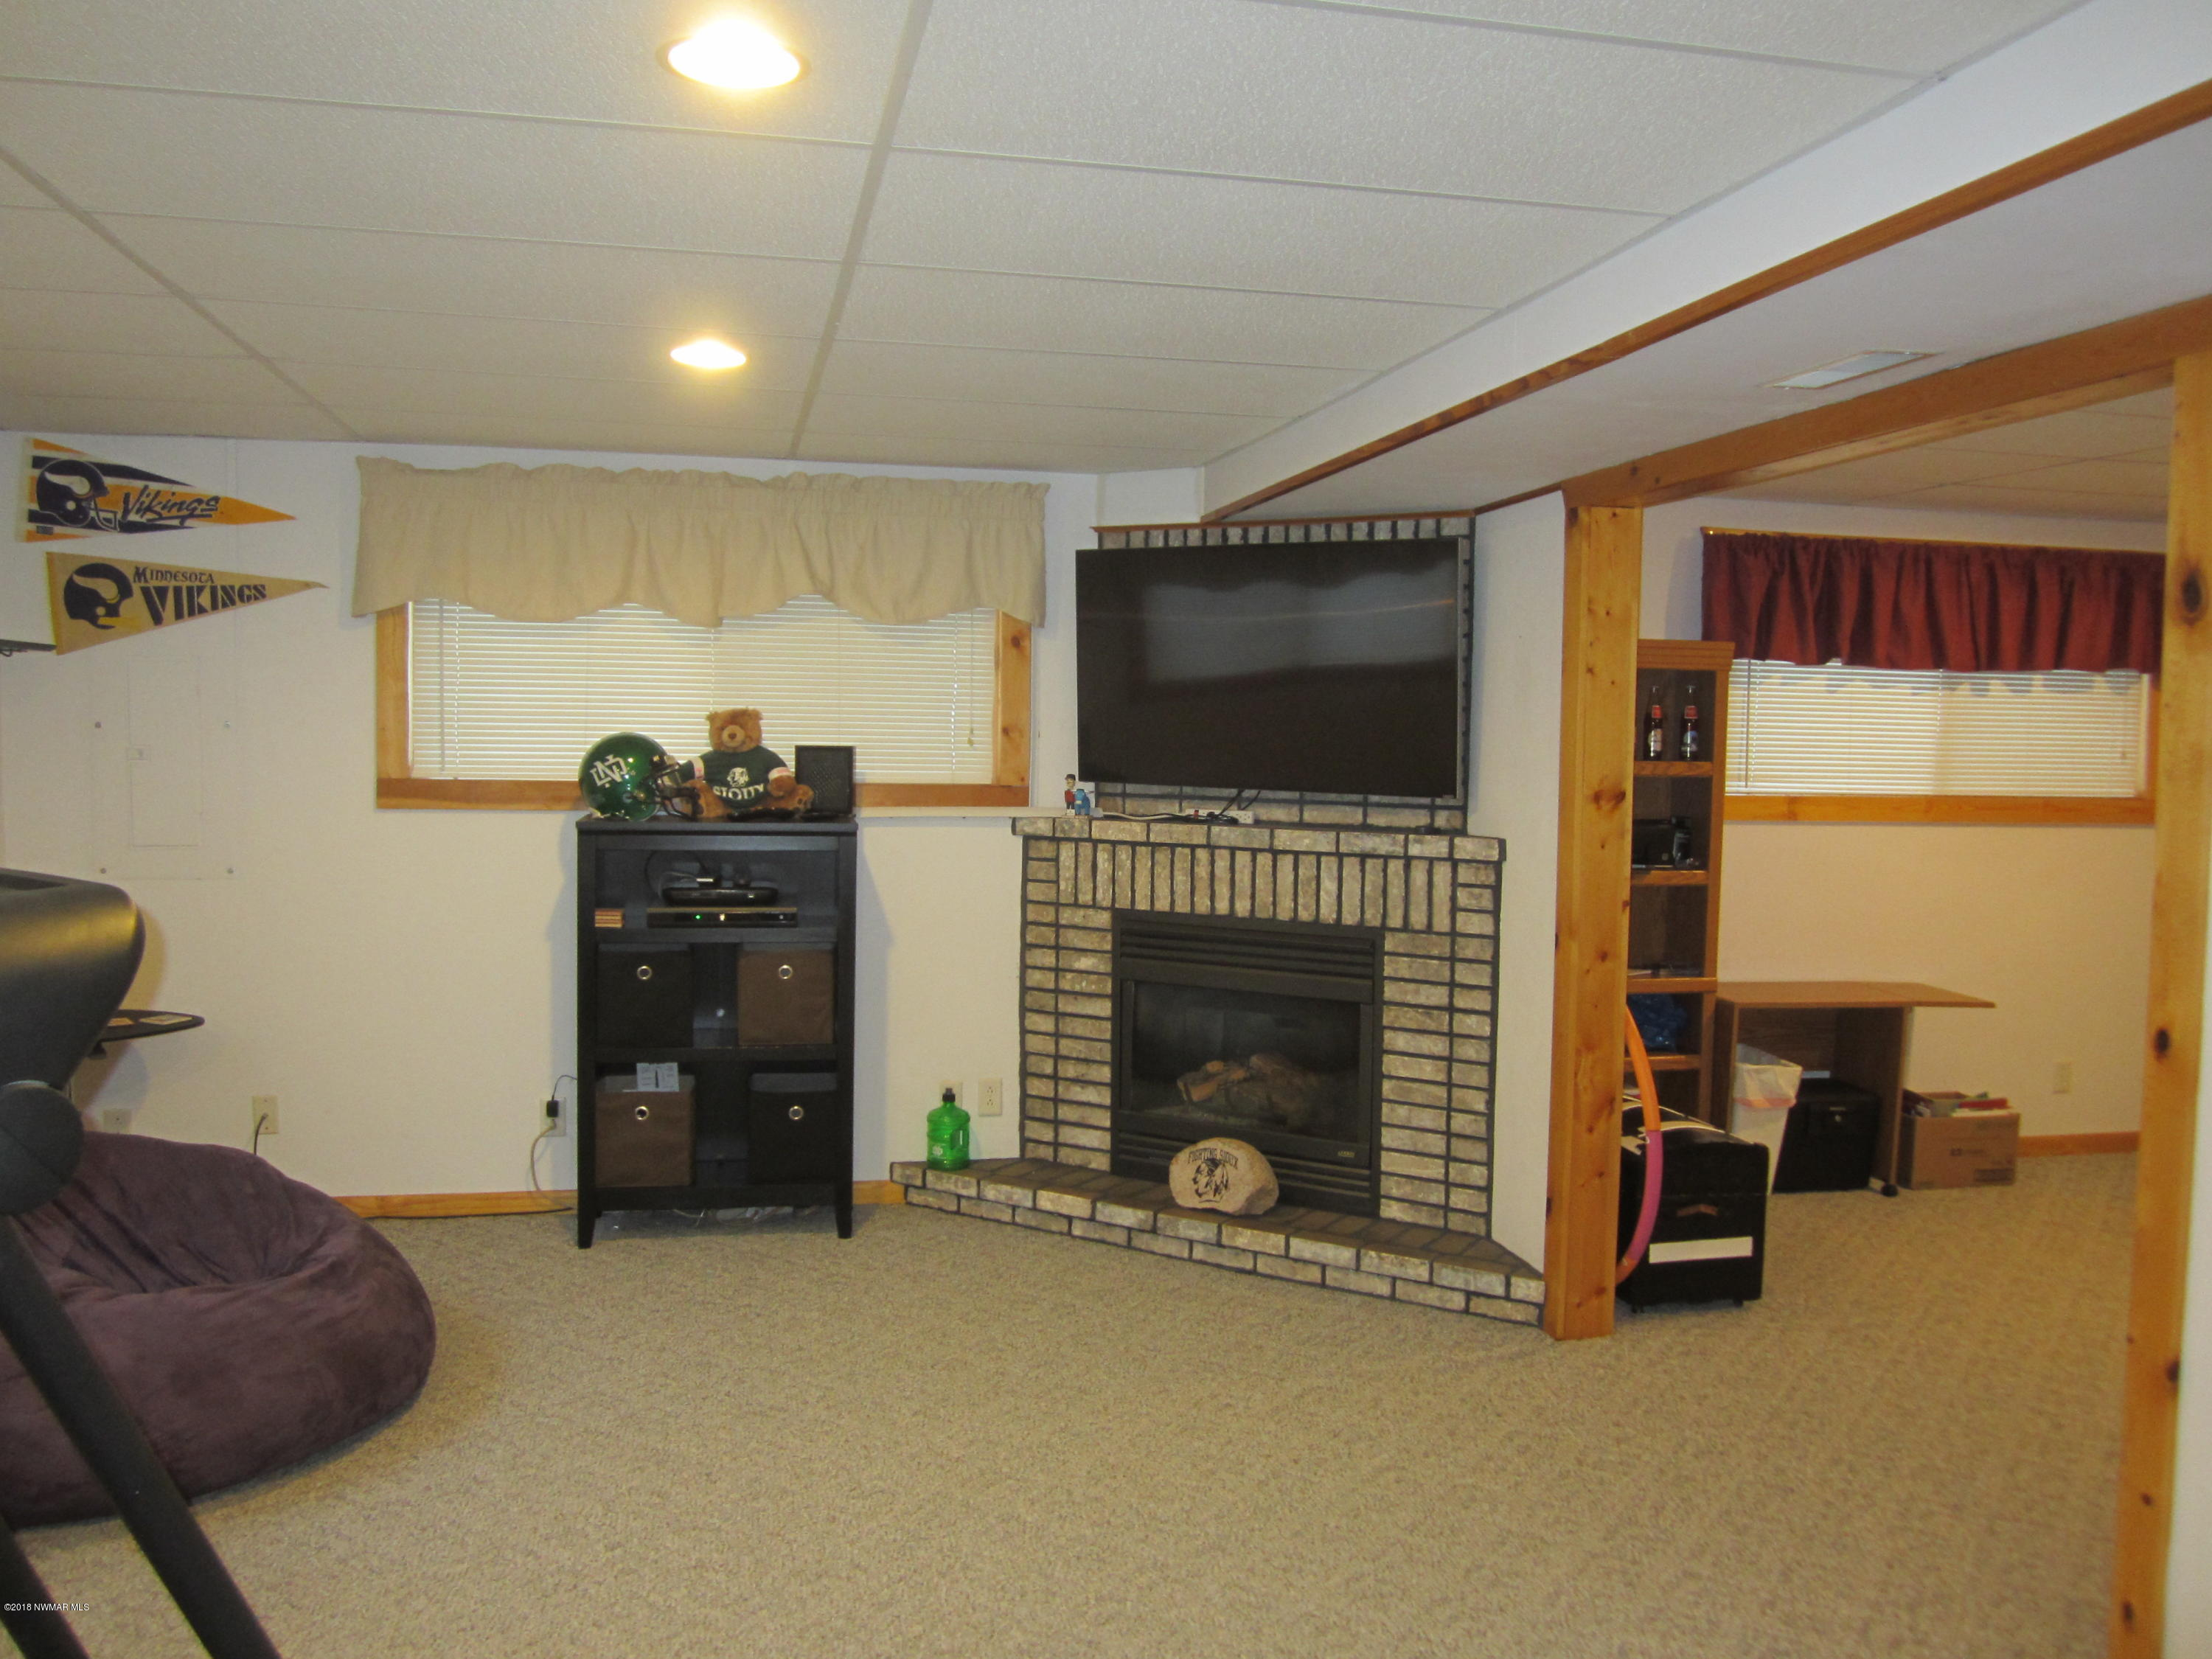 Main portion of family room leads to second portion